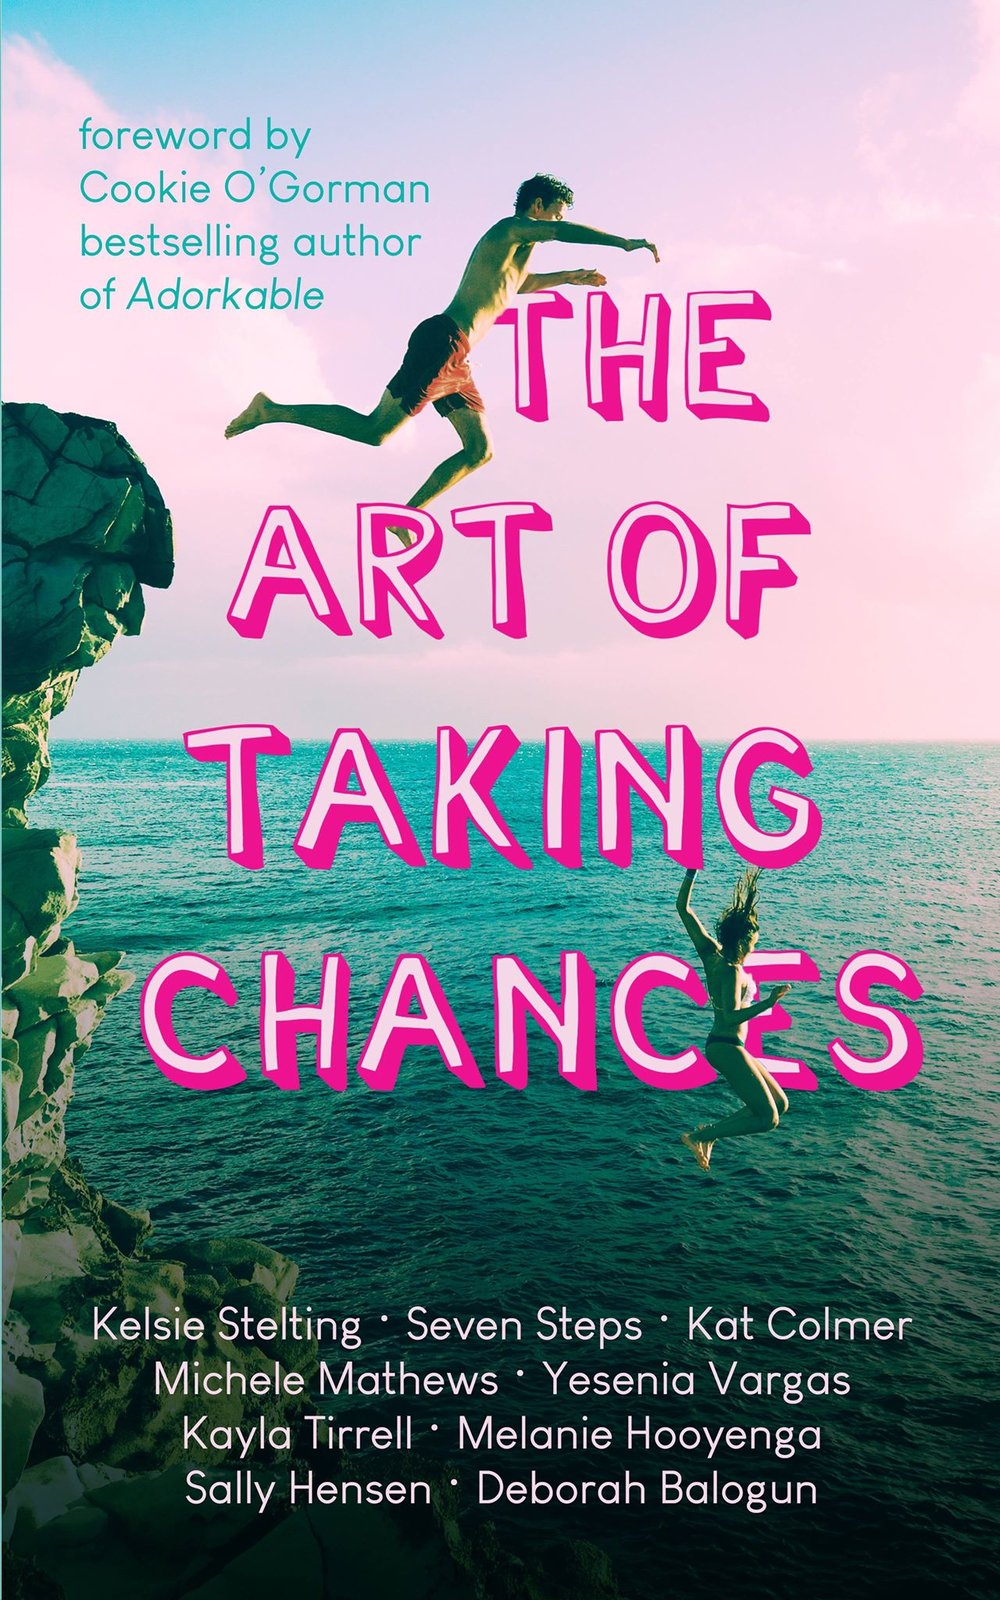 art of taking chances.jpg